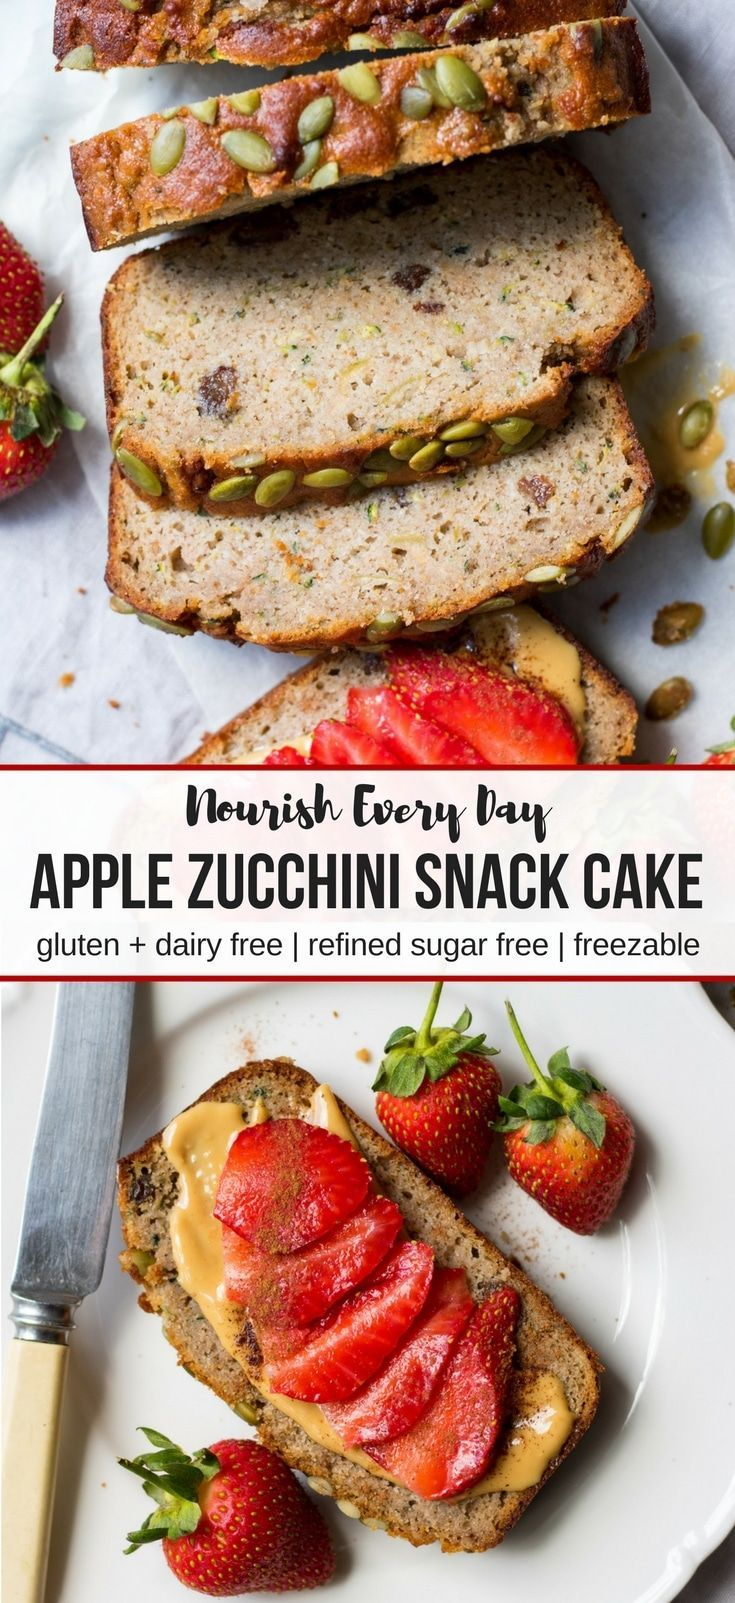 Apple zucchini snack cake (gluten free, dairy free) this loaf cake is made with wholesome ingredients for a healthy snack option, the perfect afternoon treat! Not too sweet. #snackcake #glutenfree #zucchinicake #dairyfree #healthysnacks